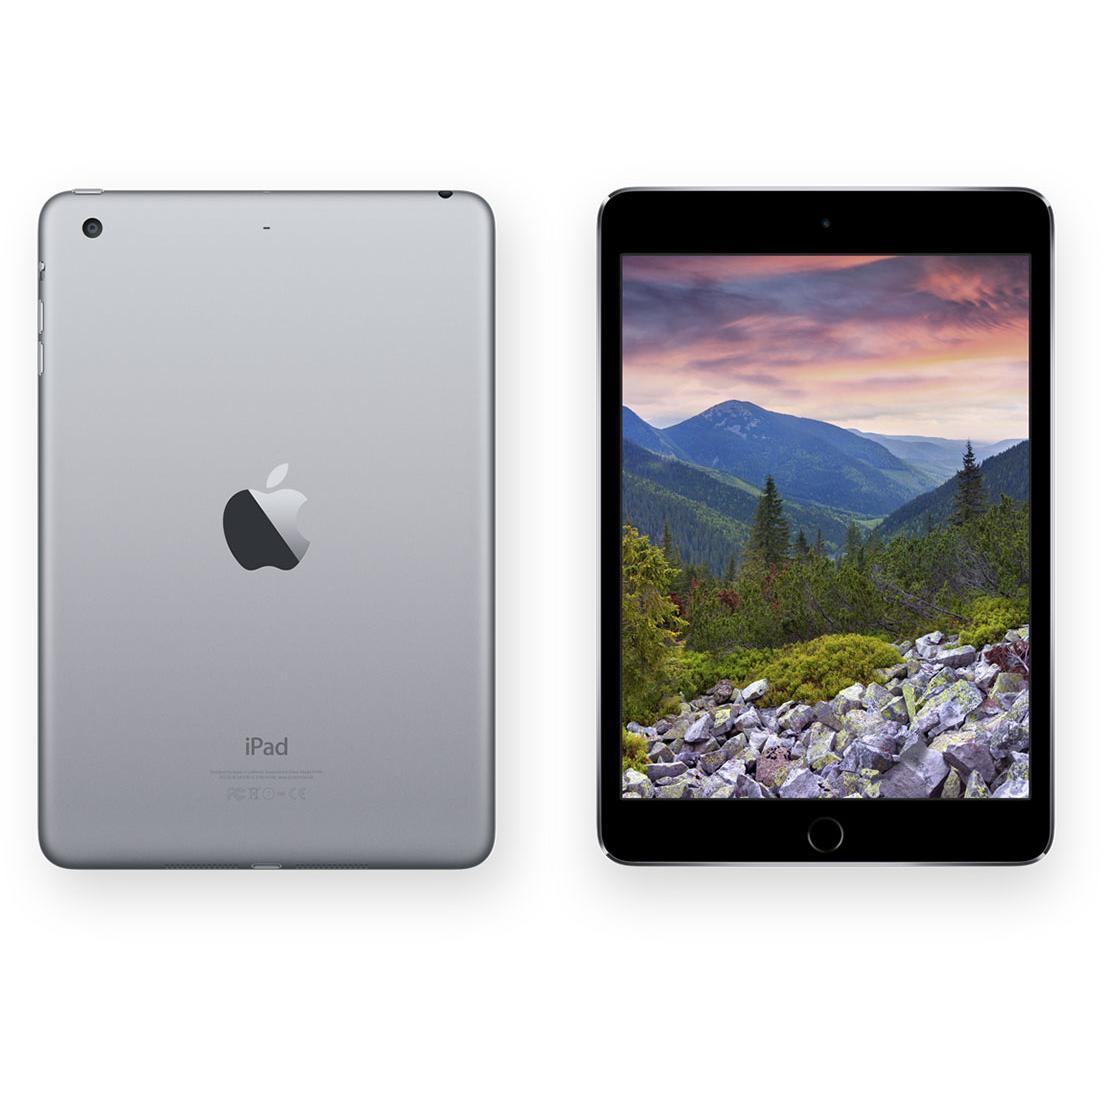 iPad mini 3 16 GB - Wifi + 4G - Gris espacial - Libre